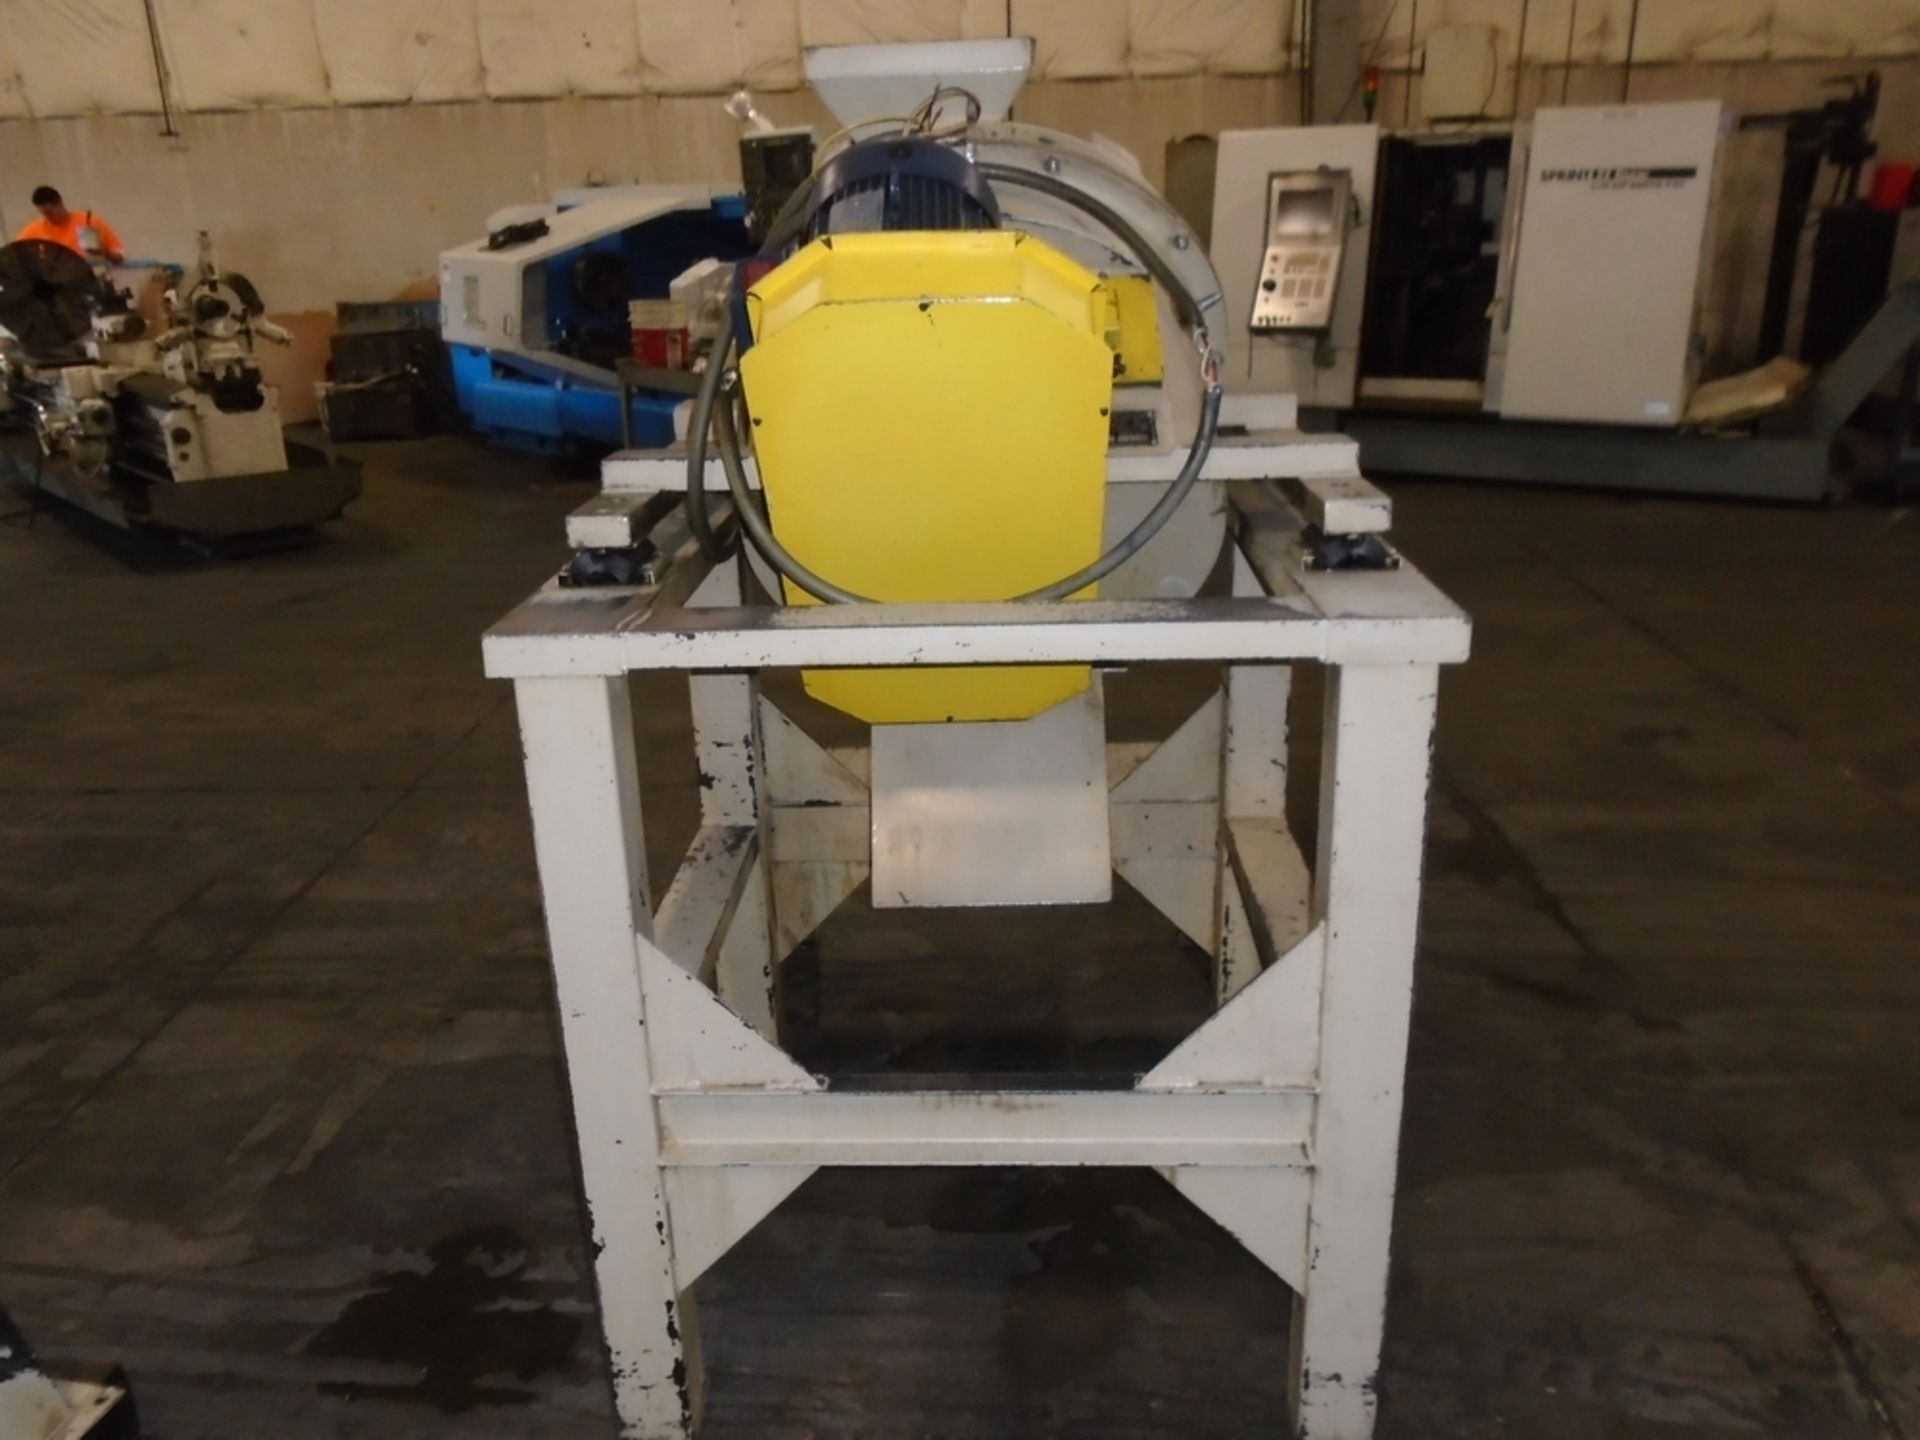 Lot 116A - Scrap Tech Model HC Tornado Continuous Centrifuge Chip Spinner Multi Station  SN: 2006 Year: 2006